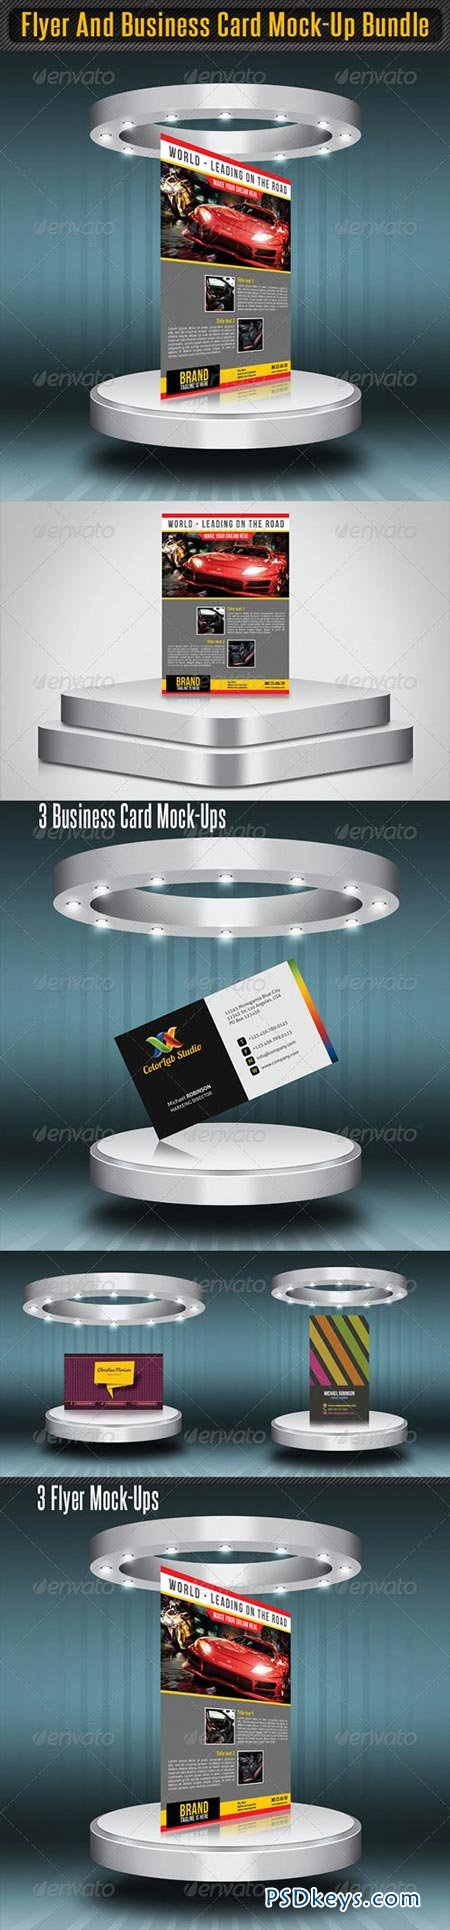 Flyer and business card mock up bundle 4383464 free download flyer and business card mock up bundle 4383464 reheart Gallery